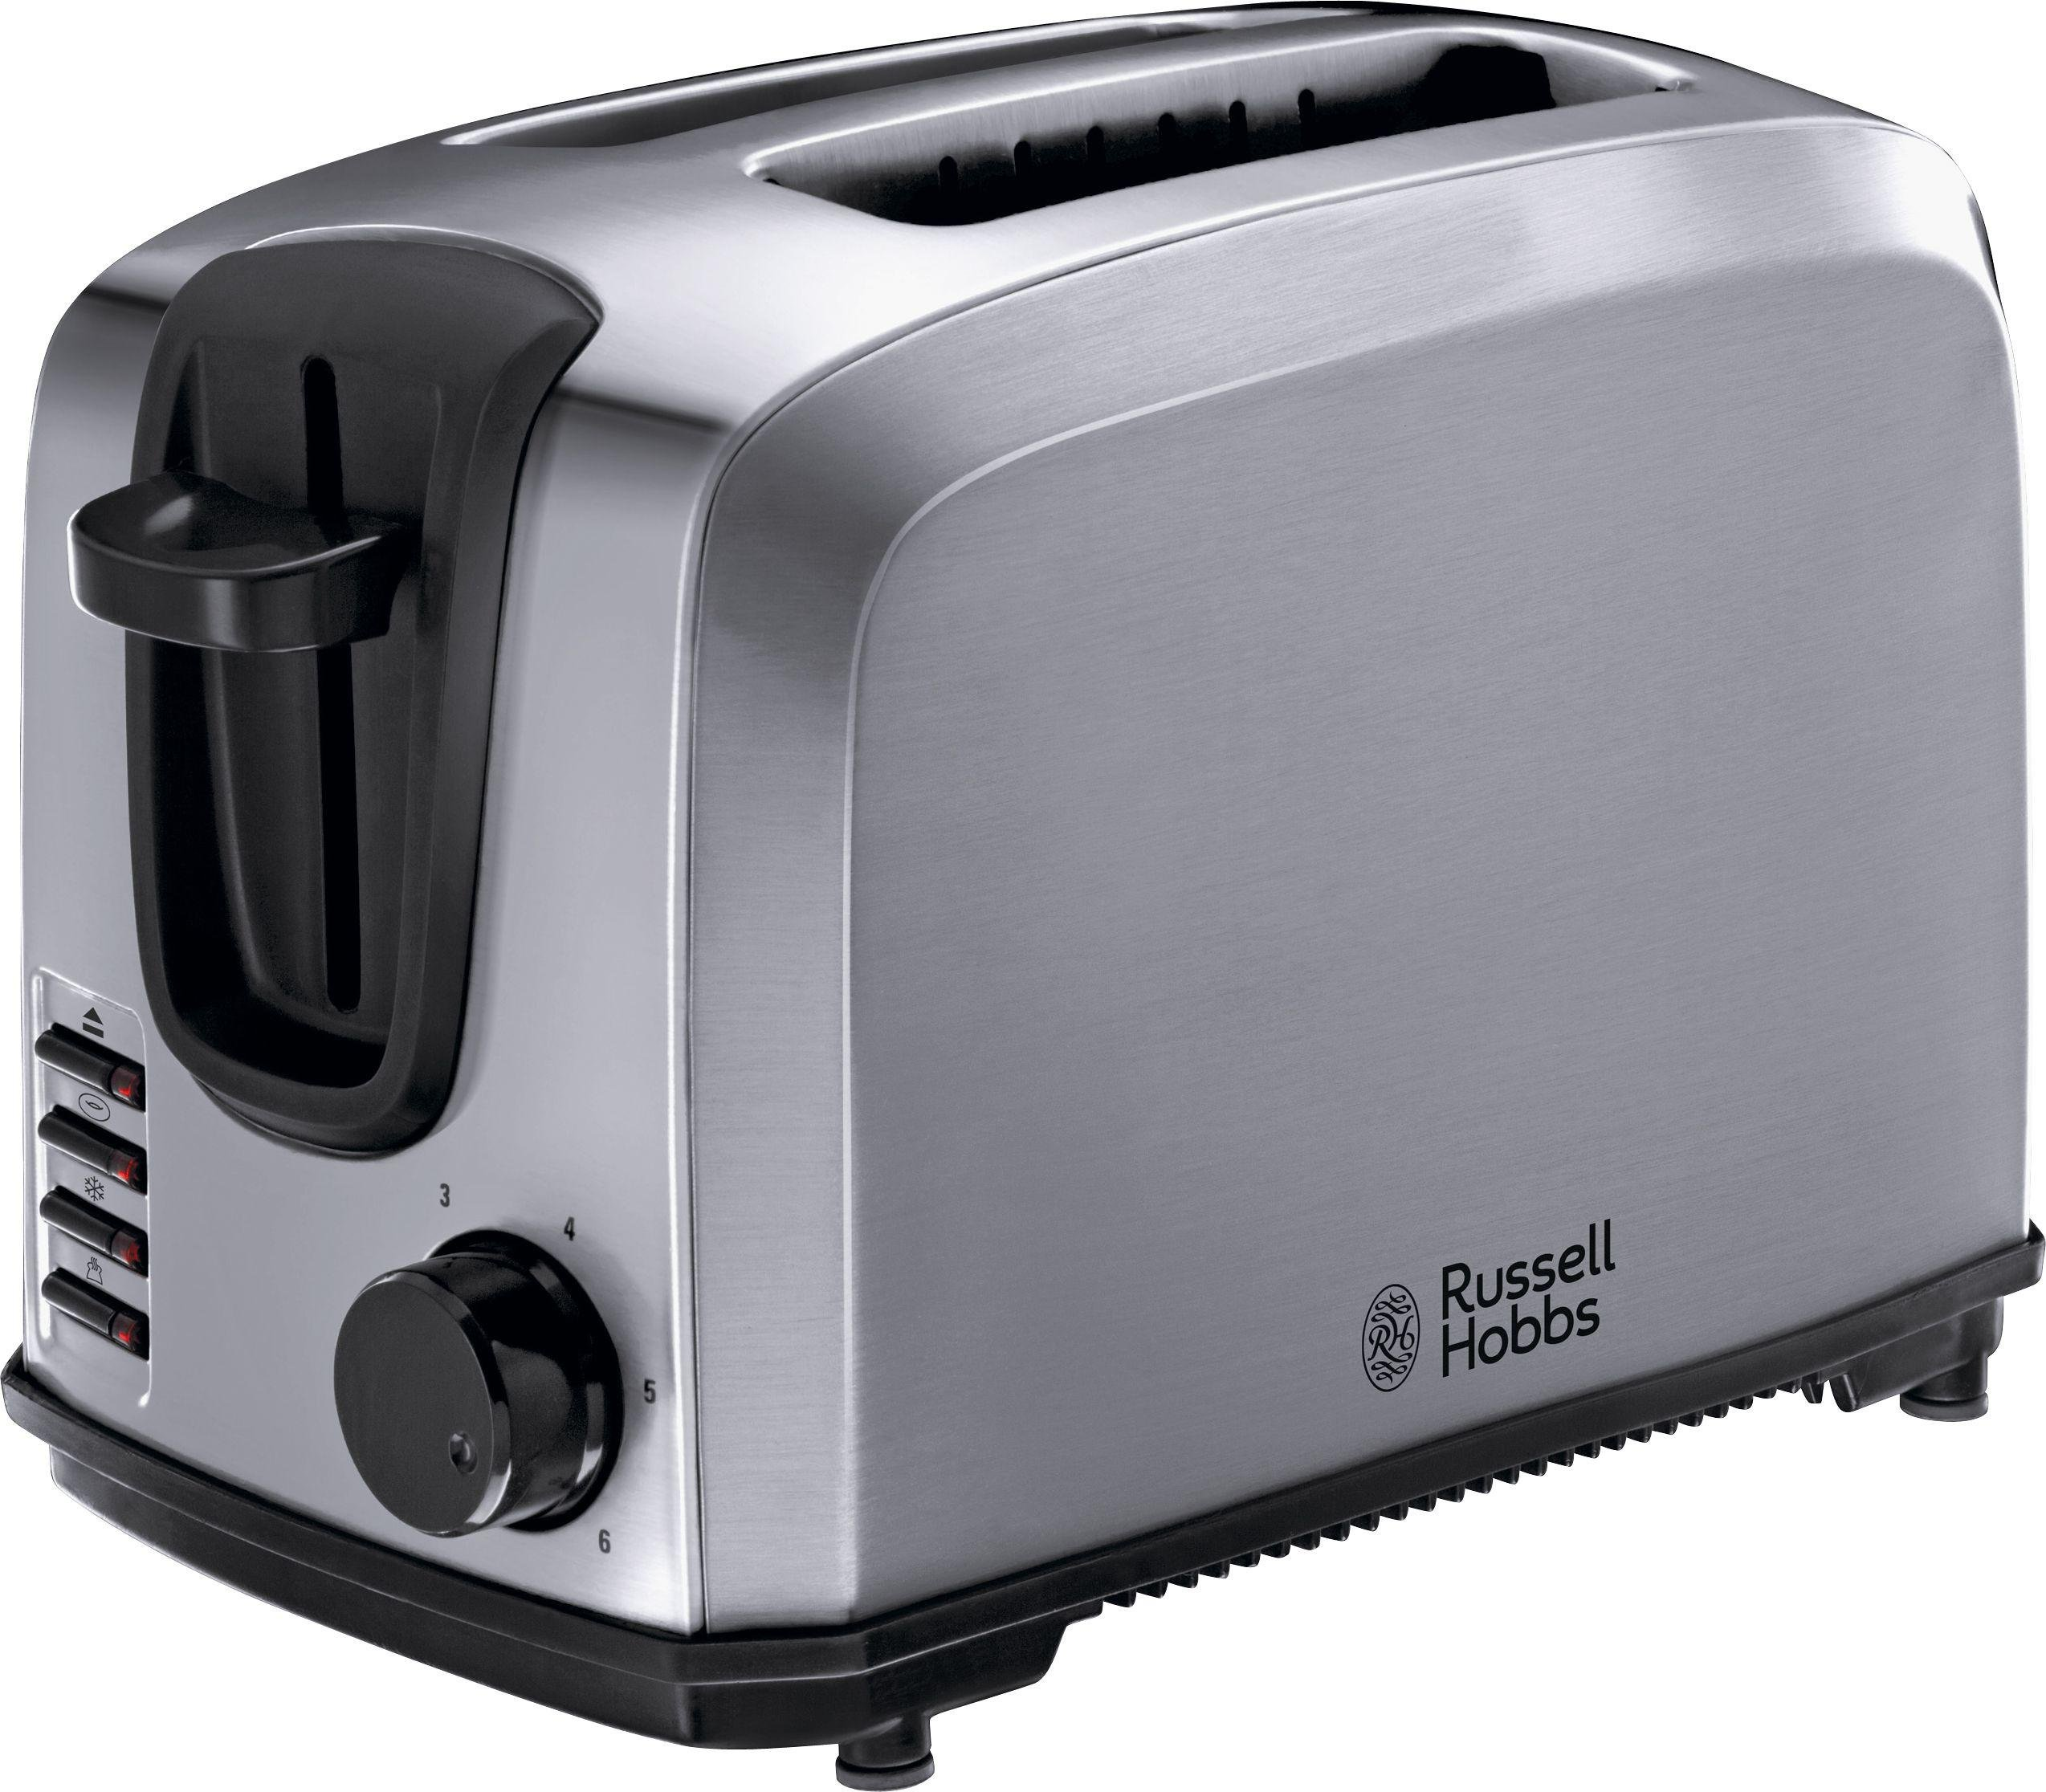 sale on russell hobbs toaster 20880 compact 2 slice stainless steel russell hobbs now avai. Black Bedroom Furniture Sets. Home Design Ideas